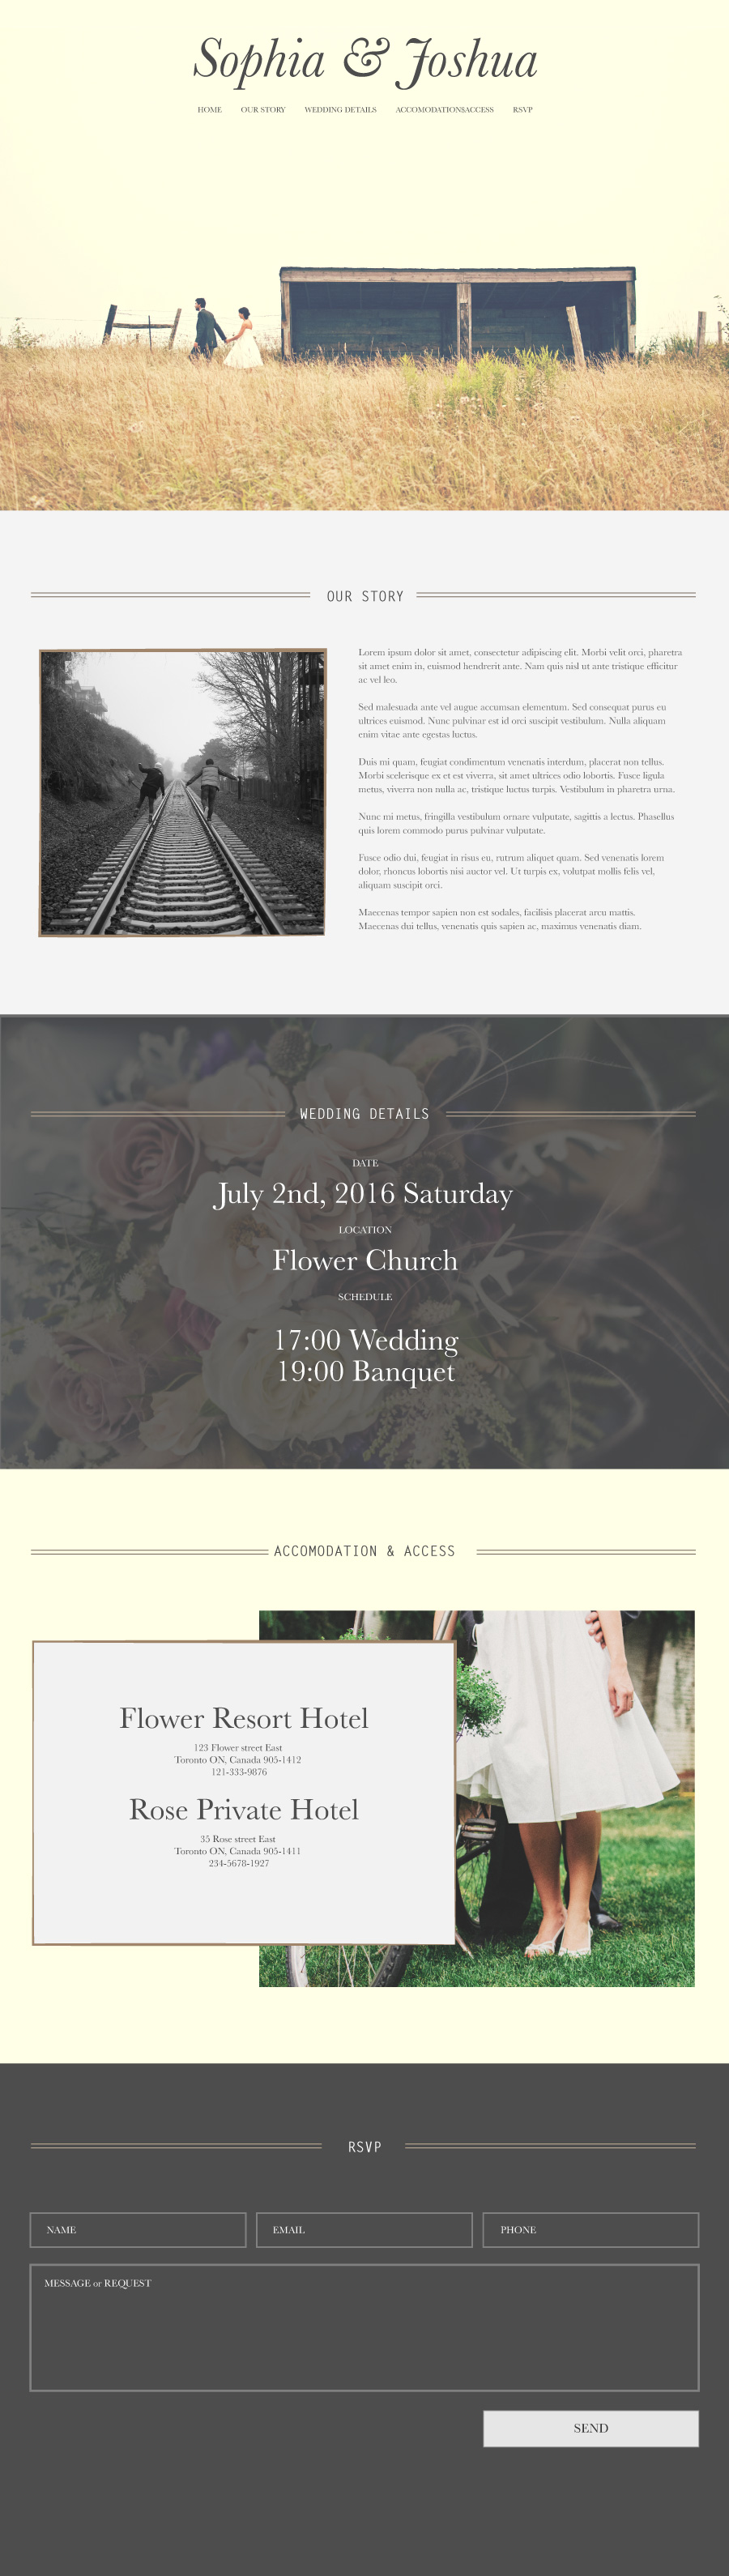 Wedding Invitation Website prototype